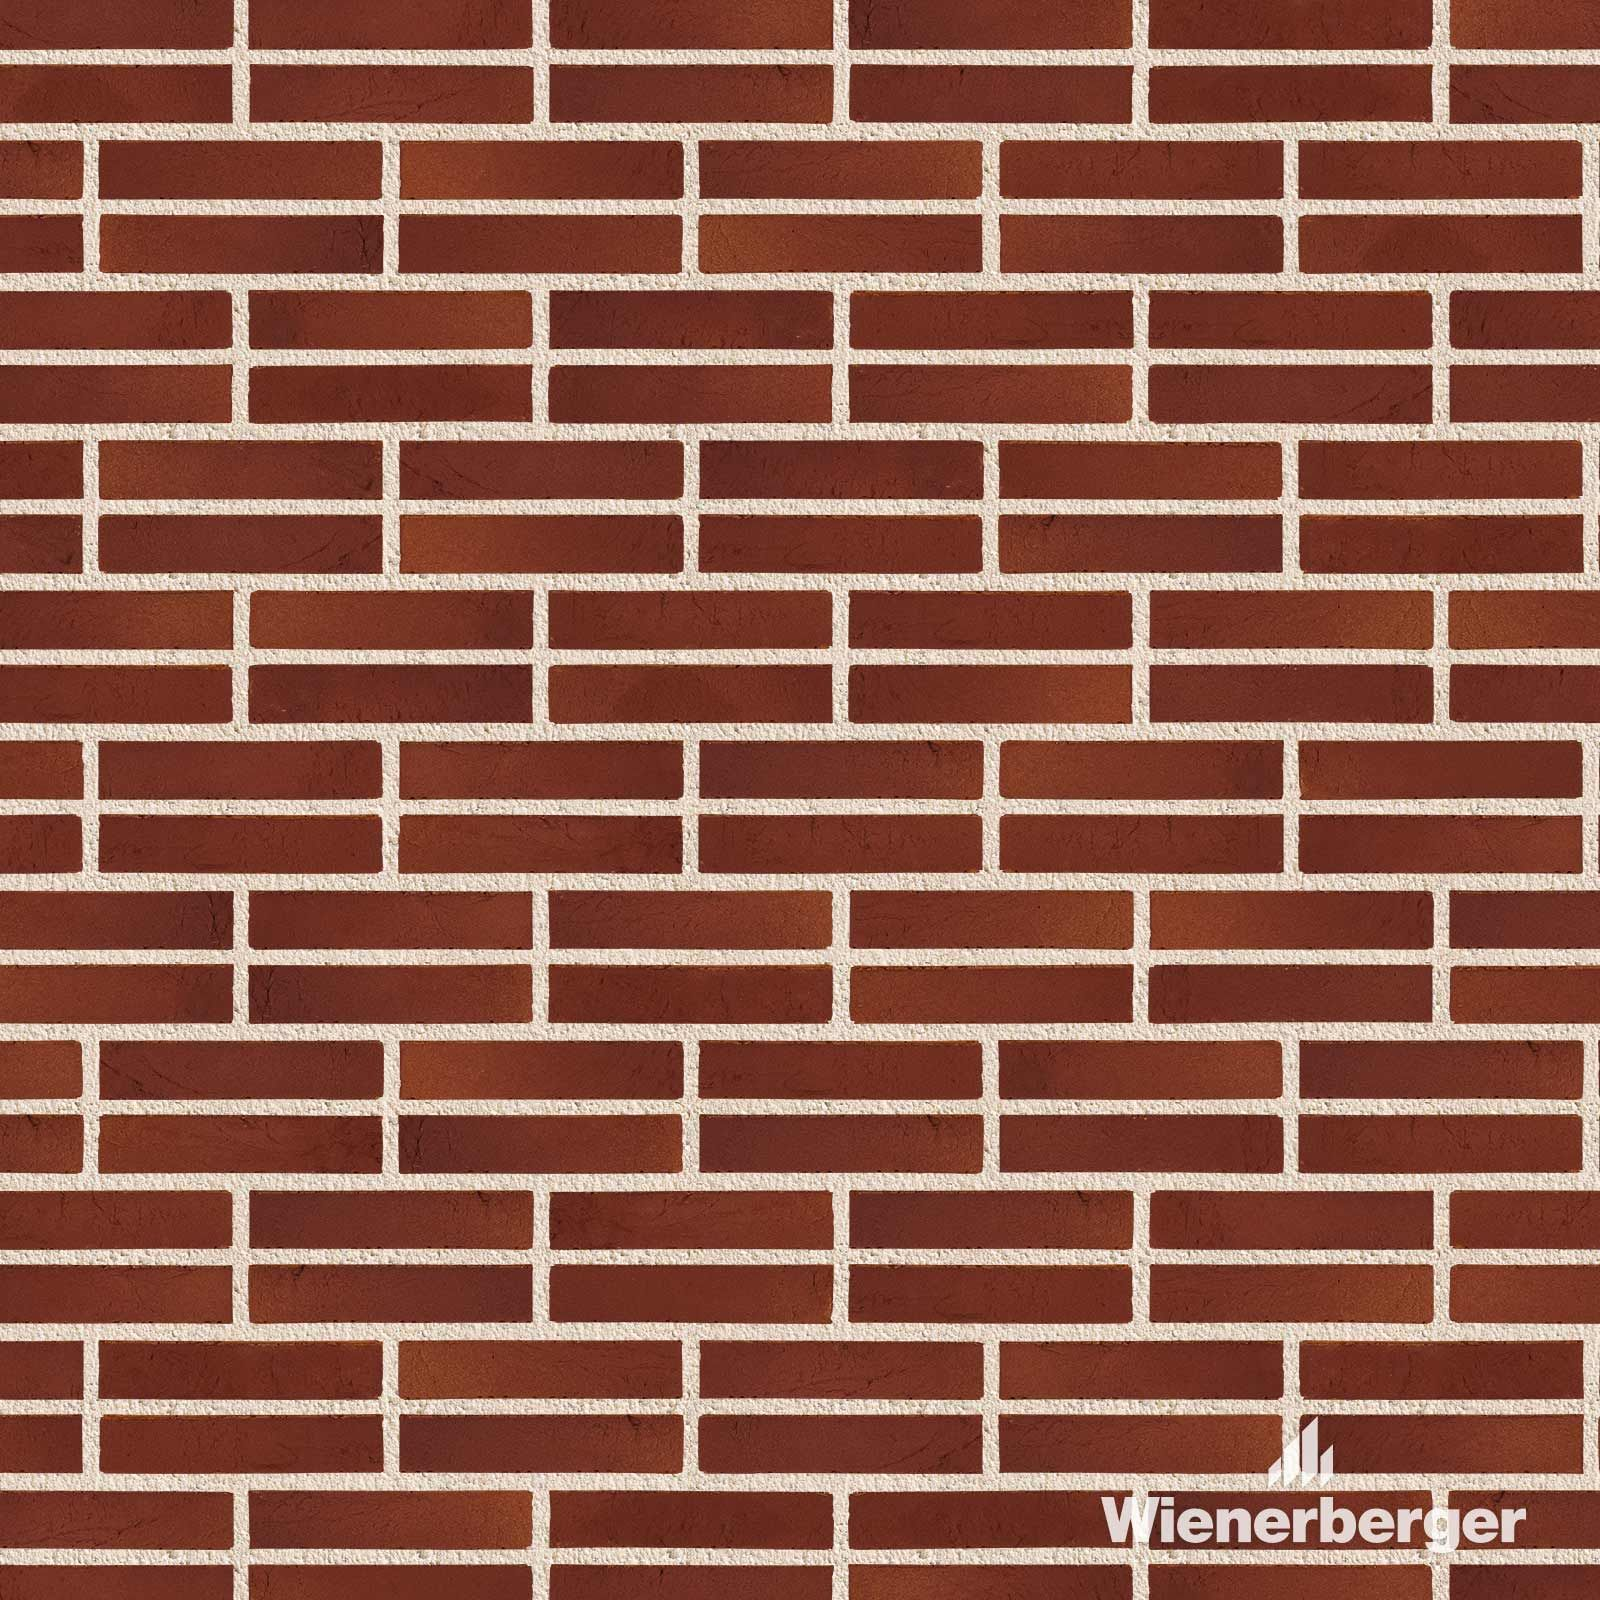 Ready To Use Texture Of The Wienerberger Facing Brick Iltarusko Retro Laid In The Stack Bond Get Yours On Our Finish Website Brick Texture Retro